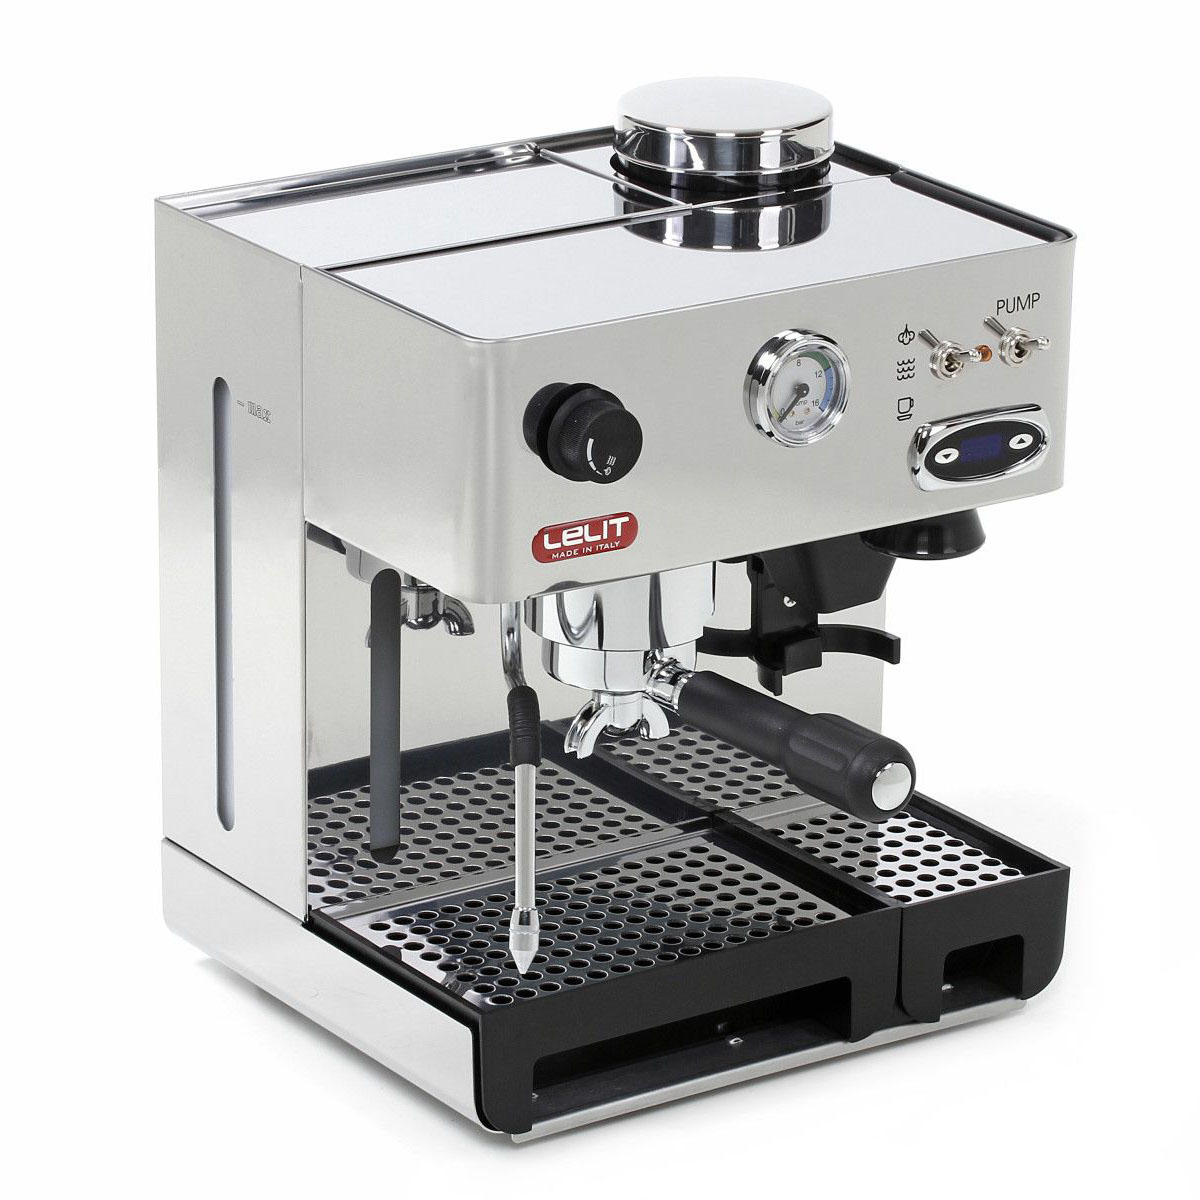 Espressor manual Lelit PL 42 TEMD, 1000 W, 2.7 L, 15 bar, rasnita, manometru, PID